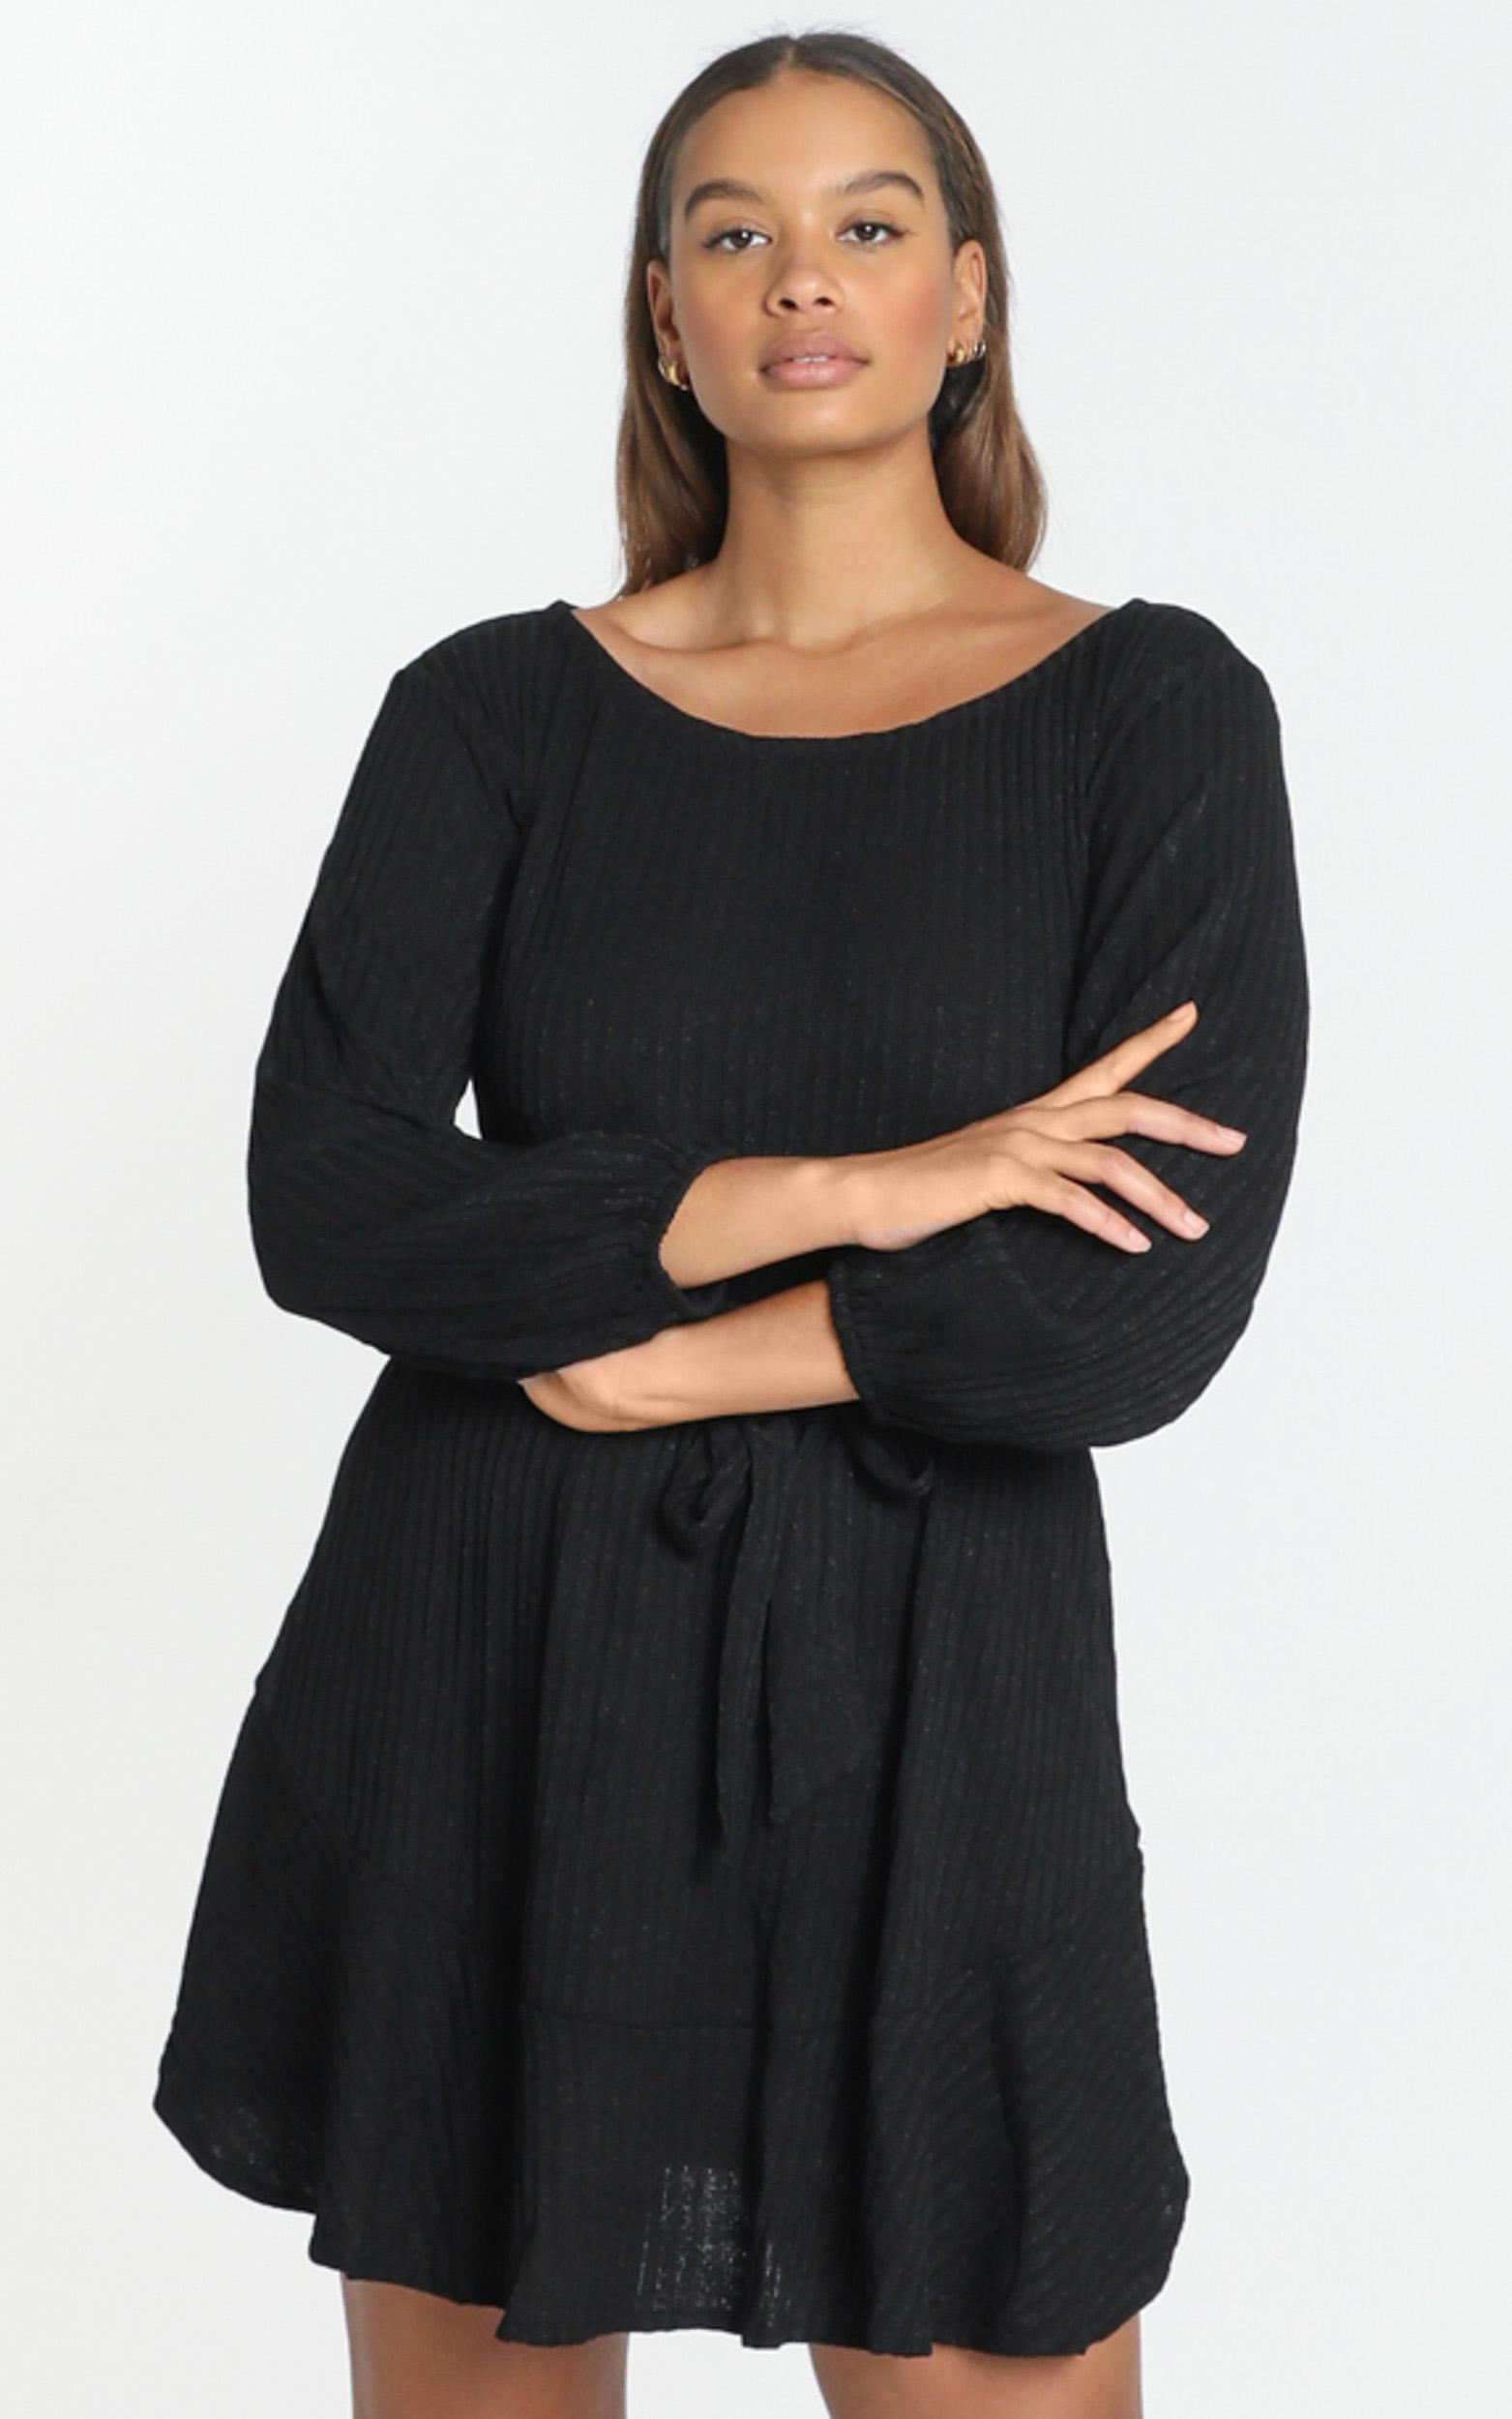 Total Relaxation Dress in black - 6 (XS), Black, hi-res image number null